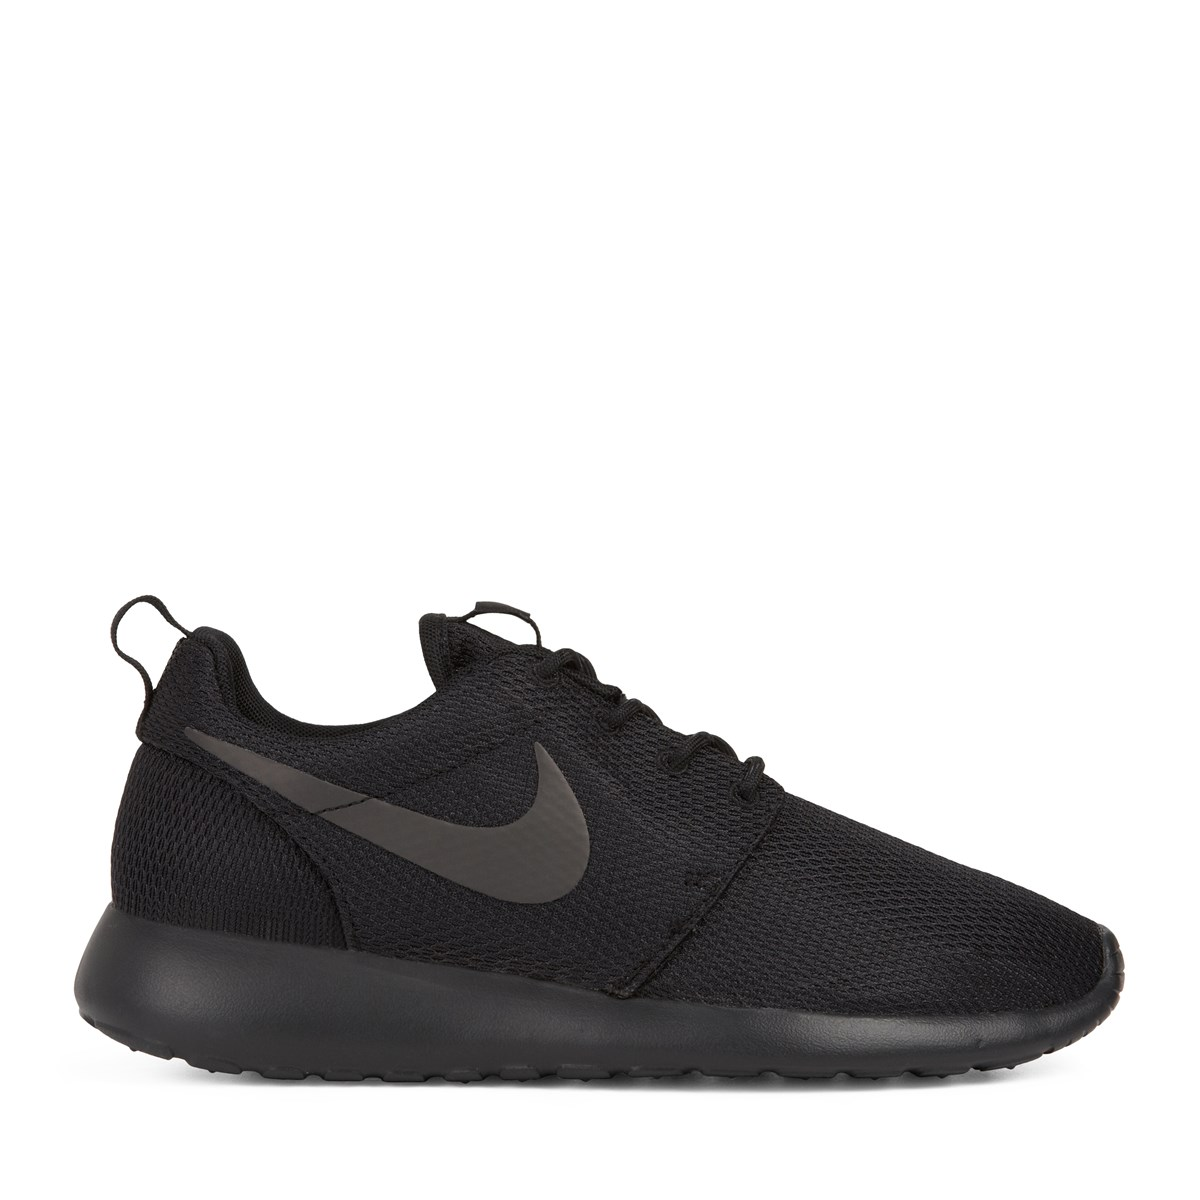 e5b2d089939d Women s Roshe One All Black Sneaker. Previous. default view